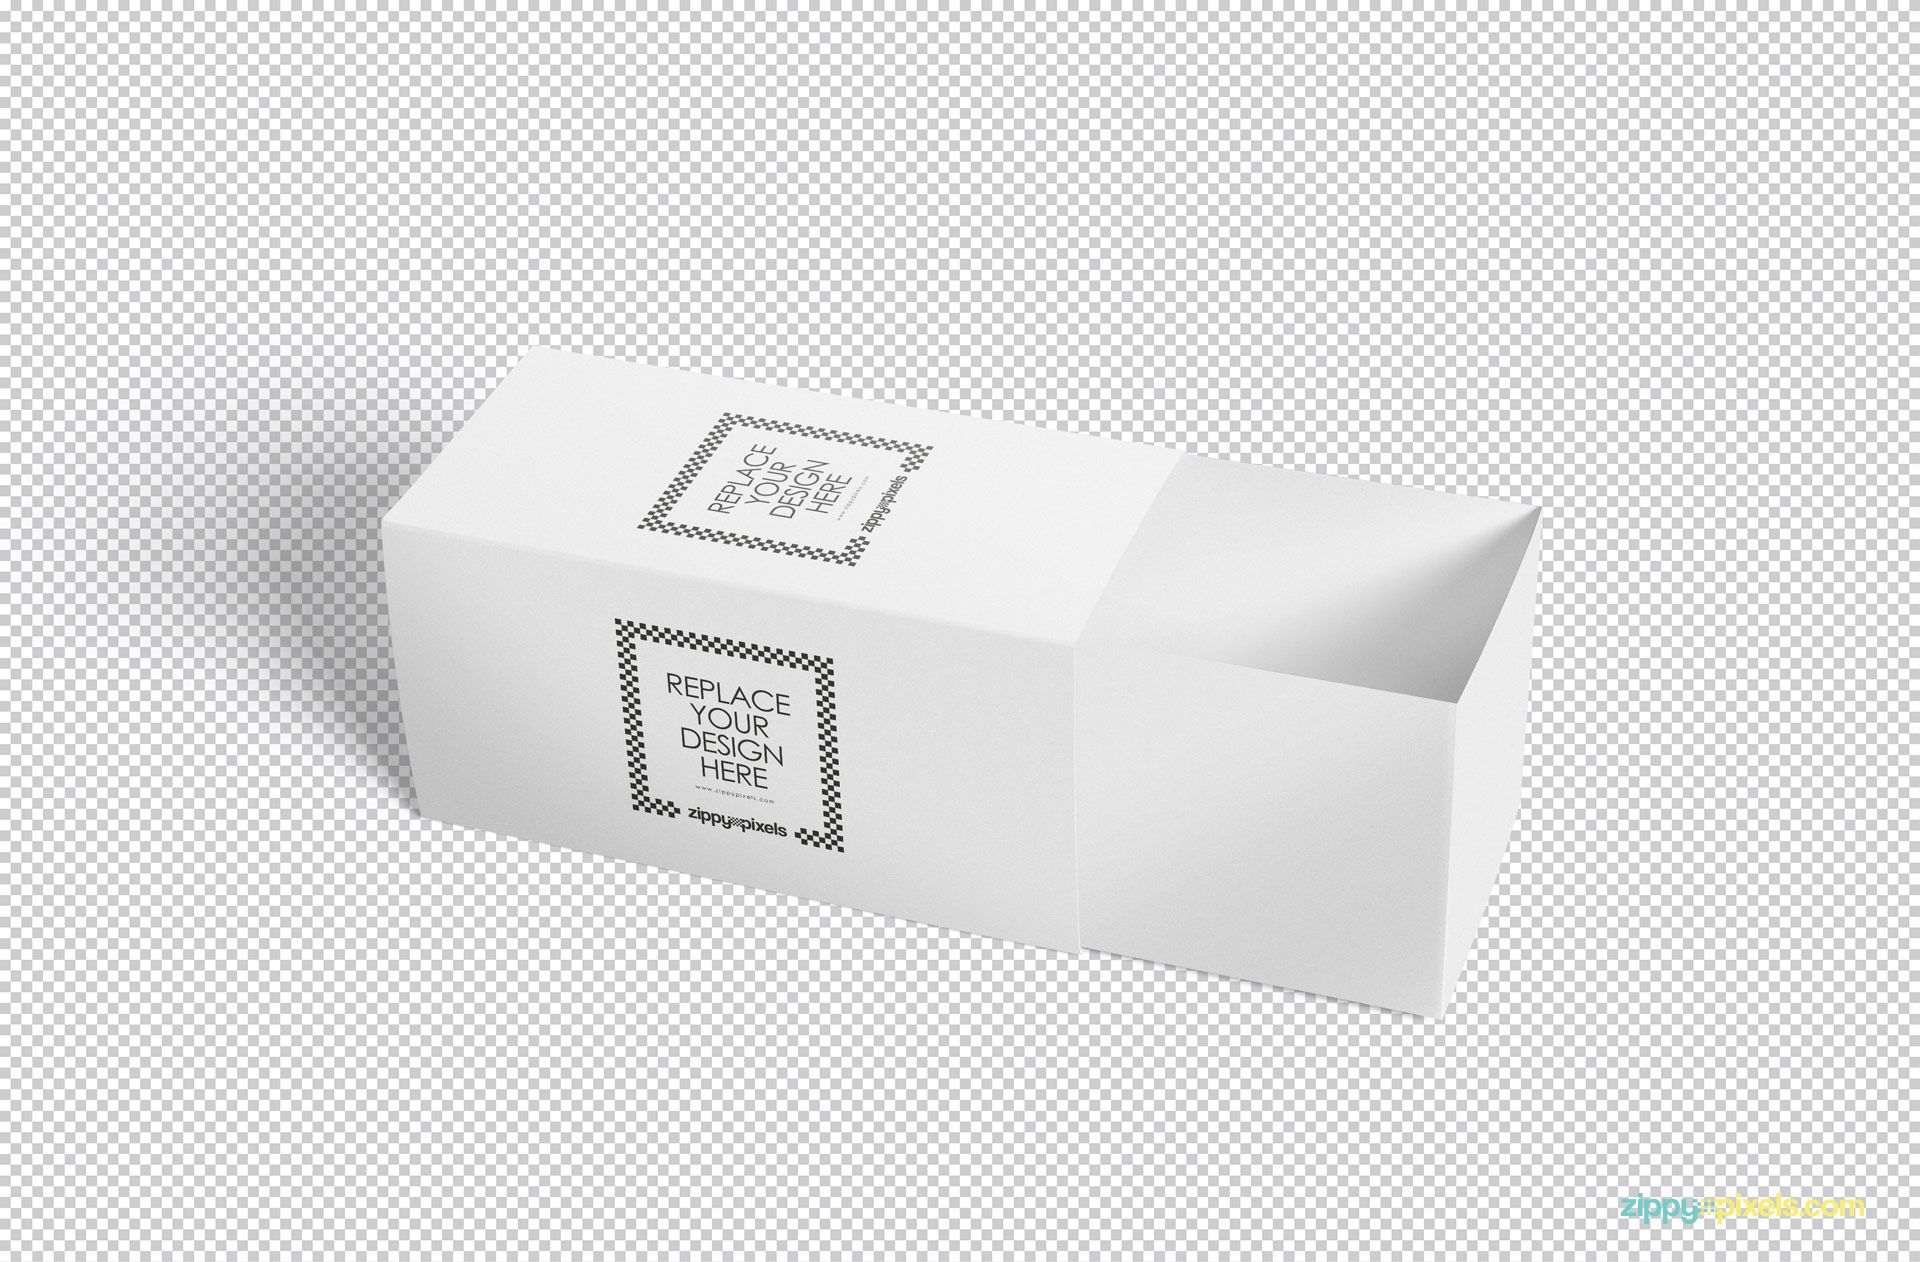 Download 3 Free Cardboard Drawer Box Mockups Zippypixels Box Mockup Drawer Box Cardboard Drawers